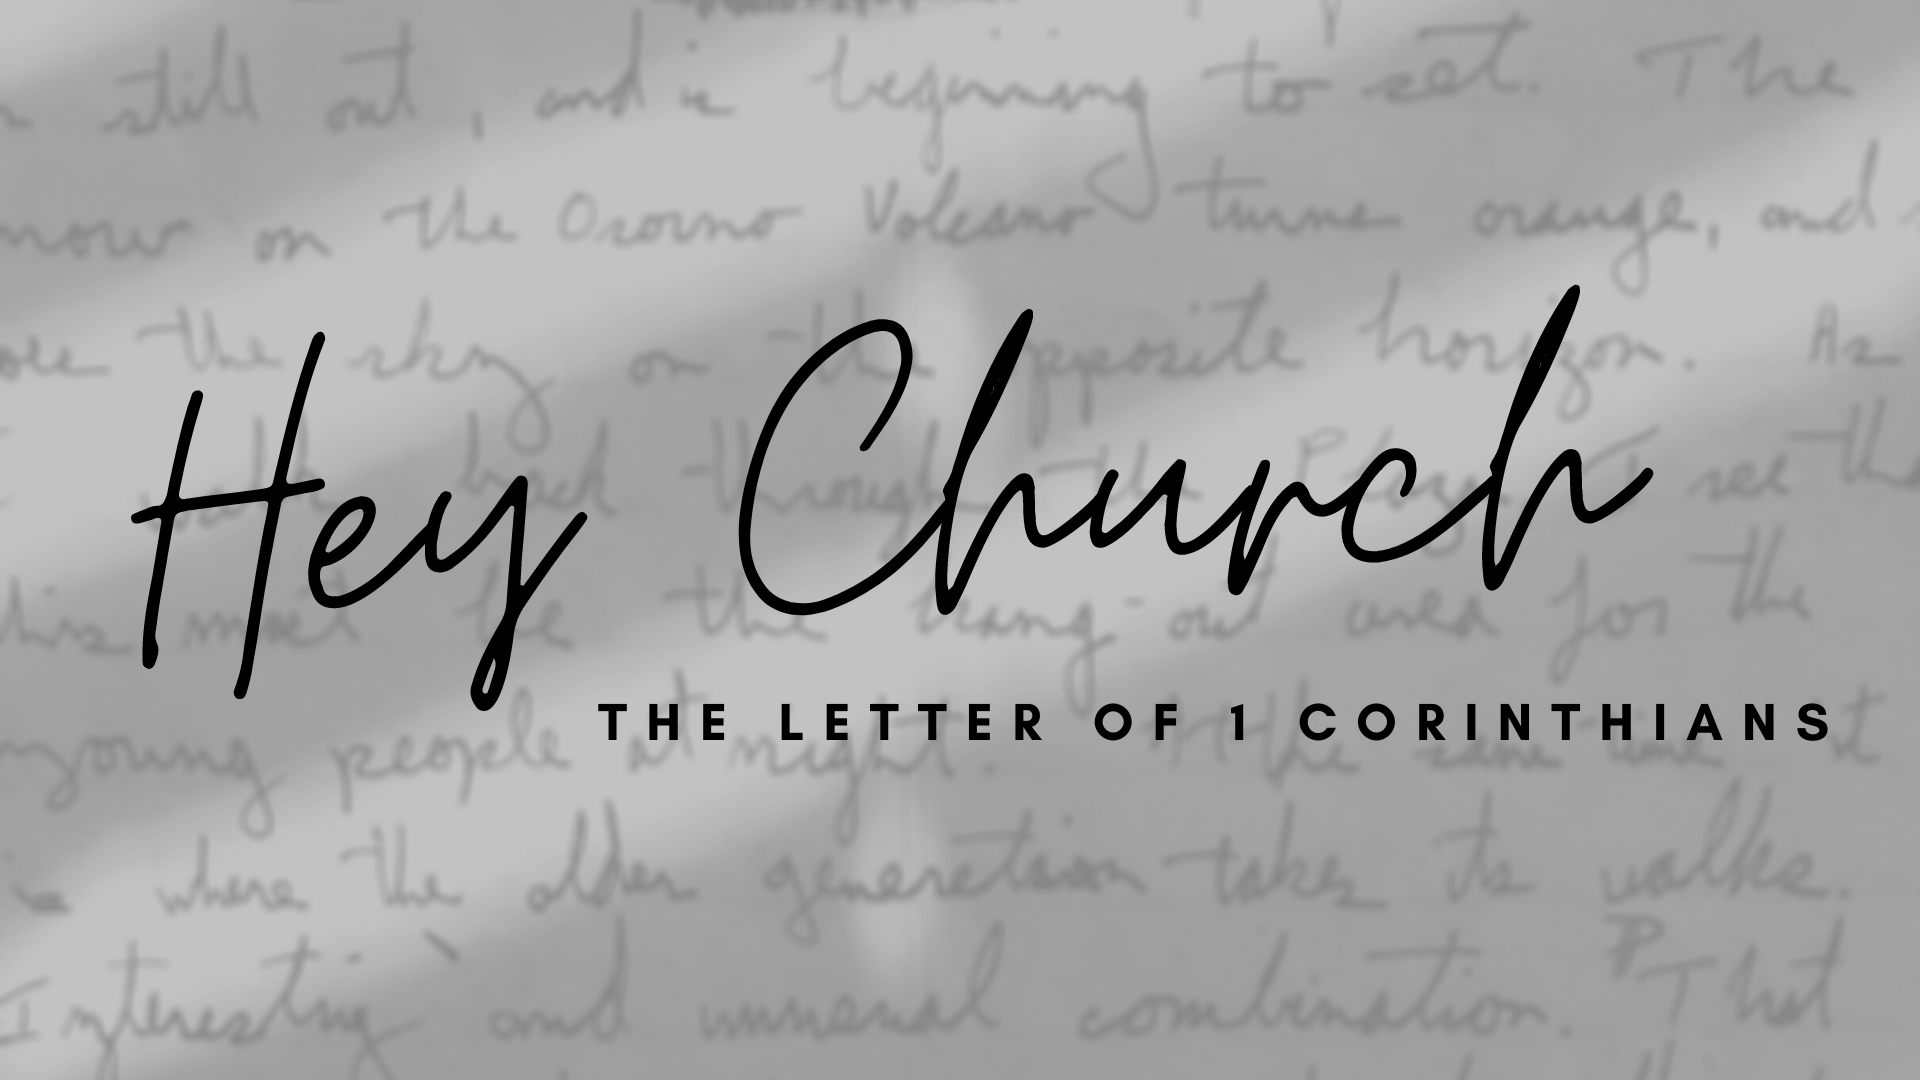 Hey Church: The Letter of 1 Corinthians (Part 2)